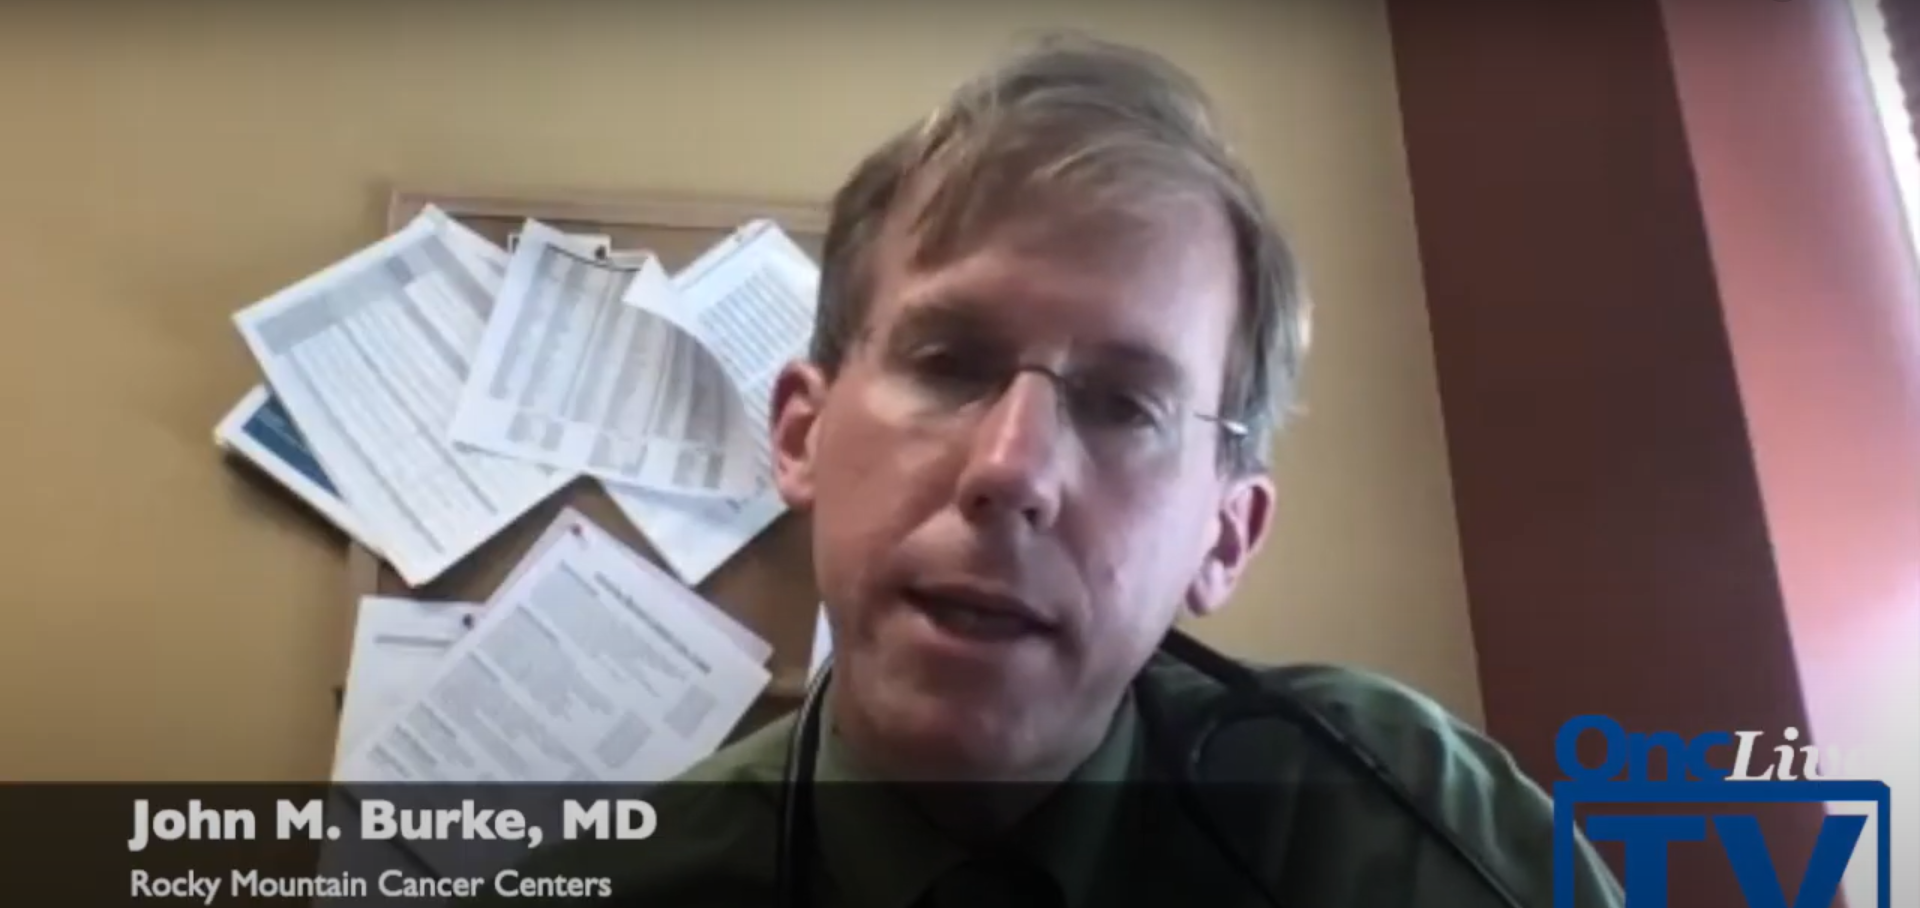 Dr. Burke on the Potential of Time-Limited BTK Inhibitor Therapy in B-Cell Malignancies